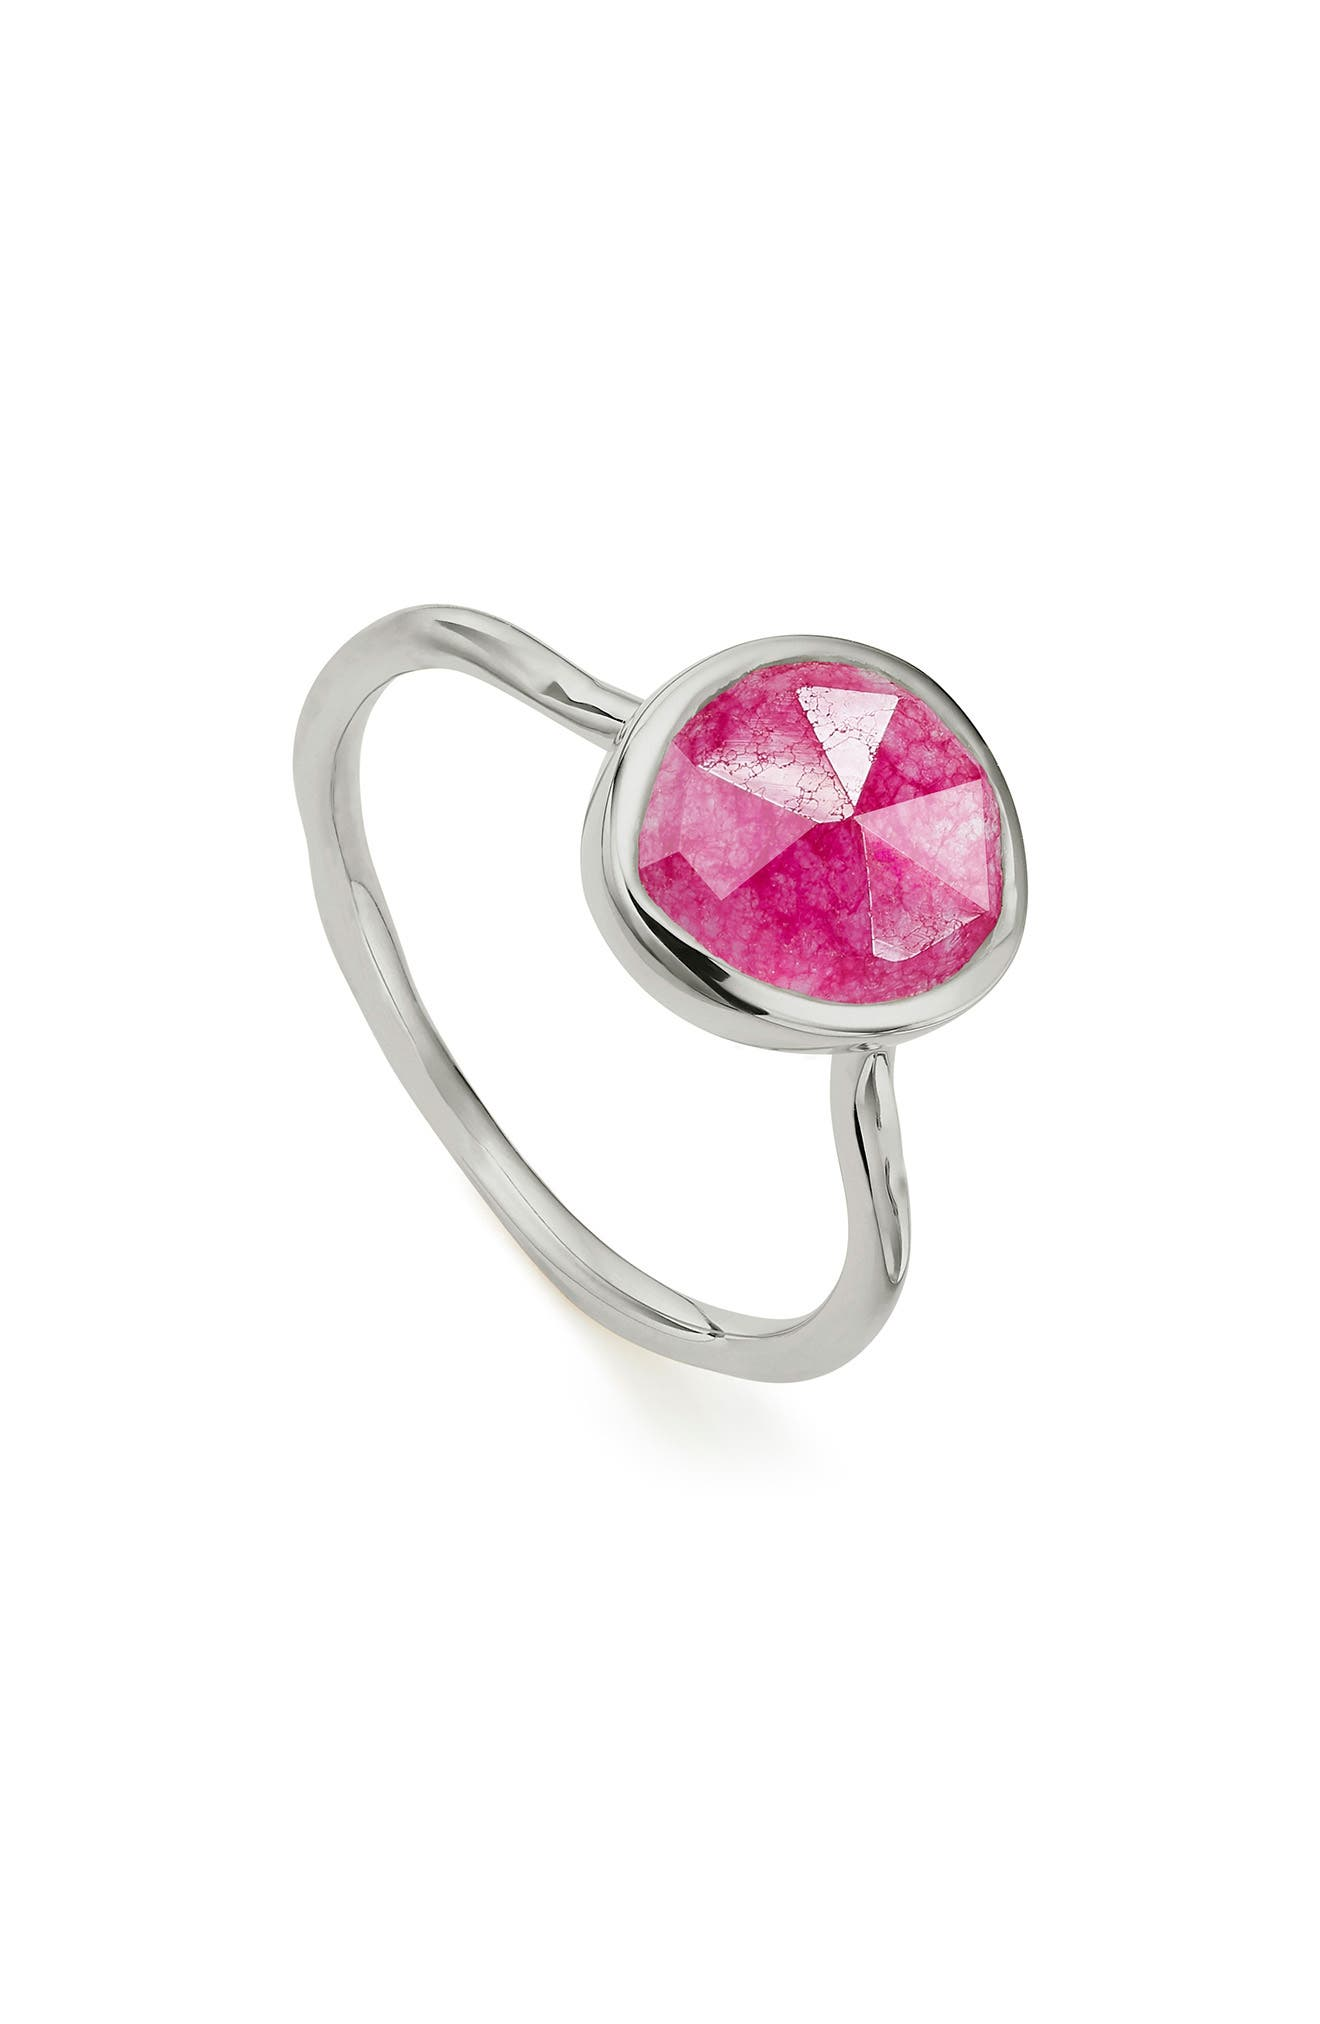 Siren Stacking Ring,                             Main thumbnail 1, color,                             SILVER/ PINK QUARTZ